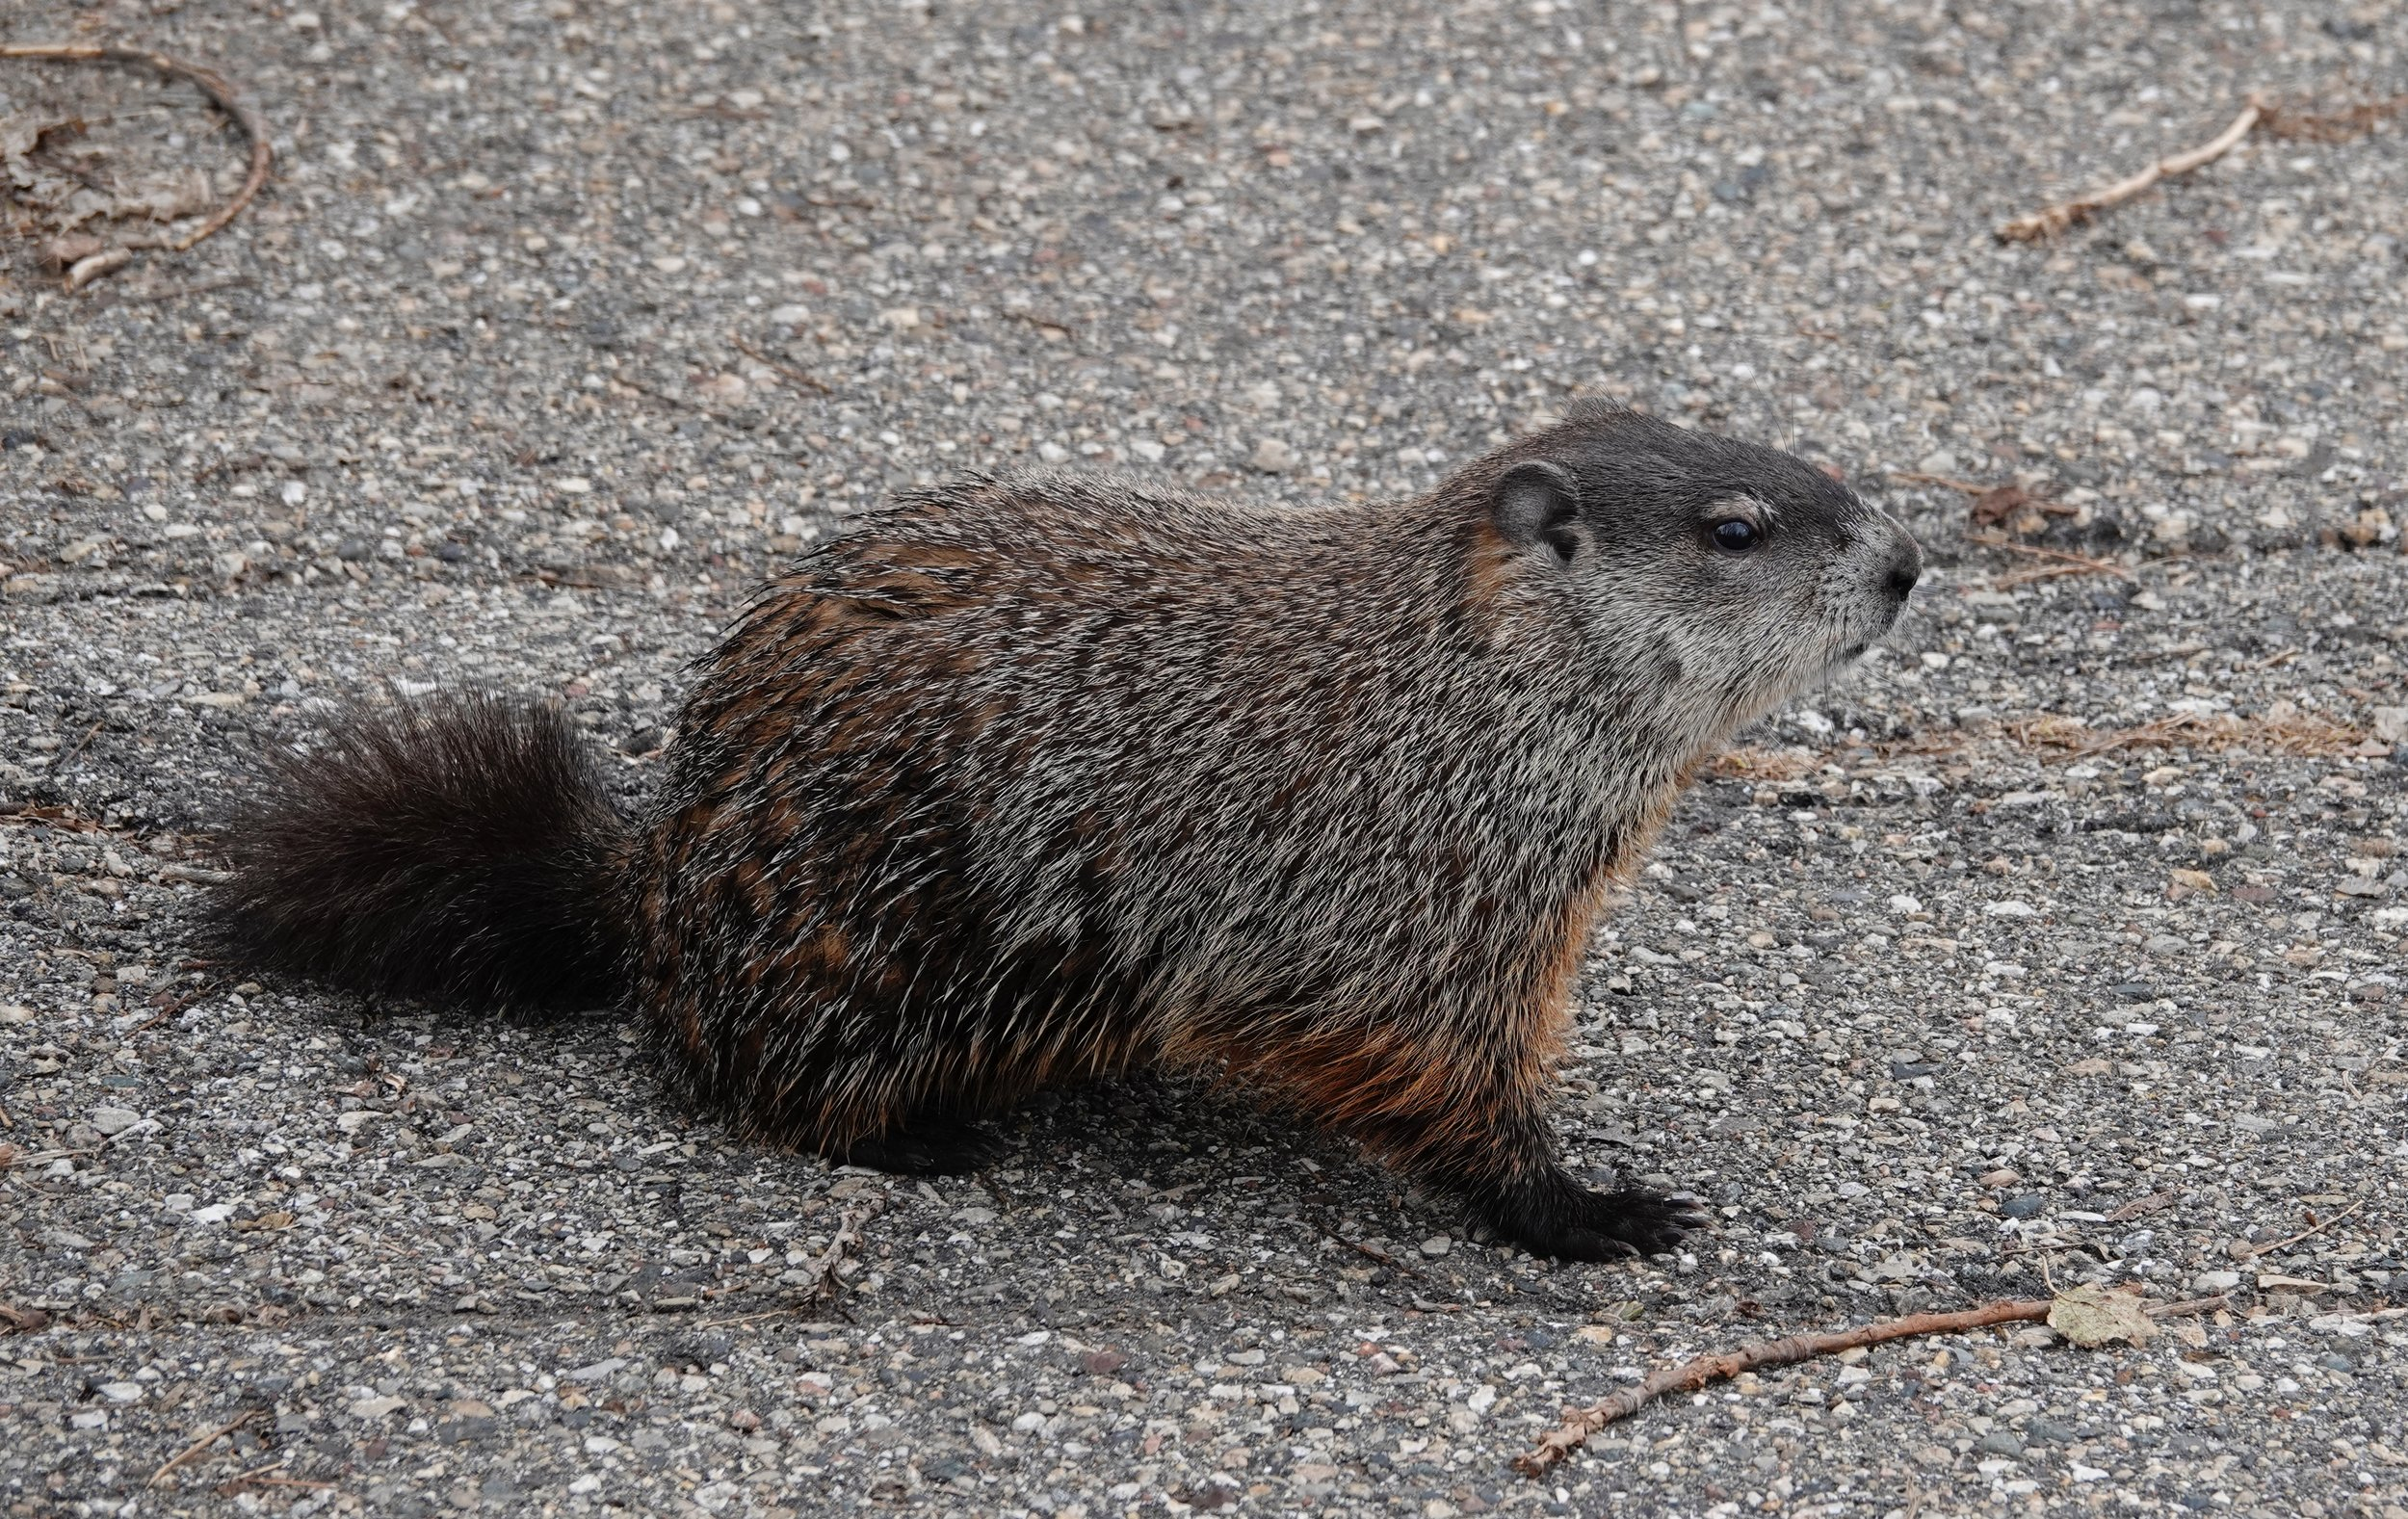 A groundhog, woodchuck, whistle-pig or land-beaver.